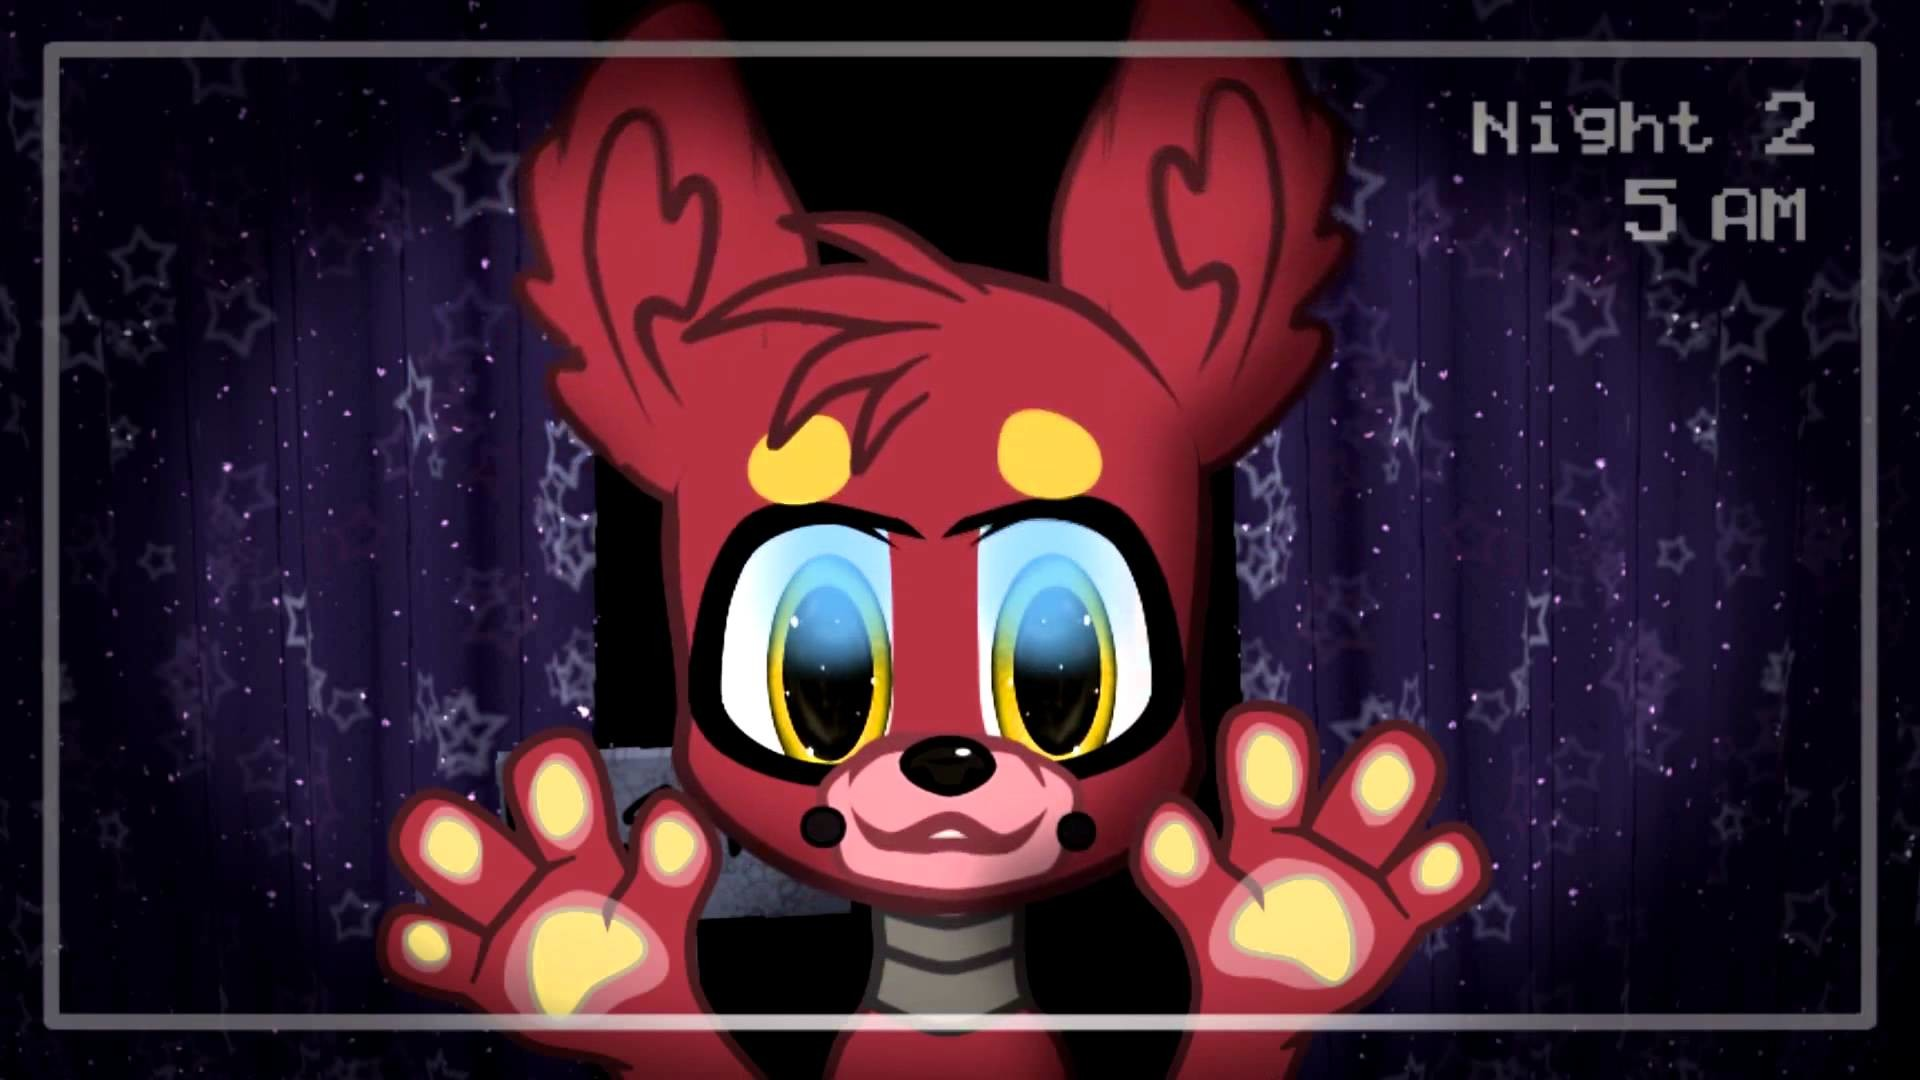 cute fnaf wallpapers 69 images